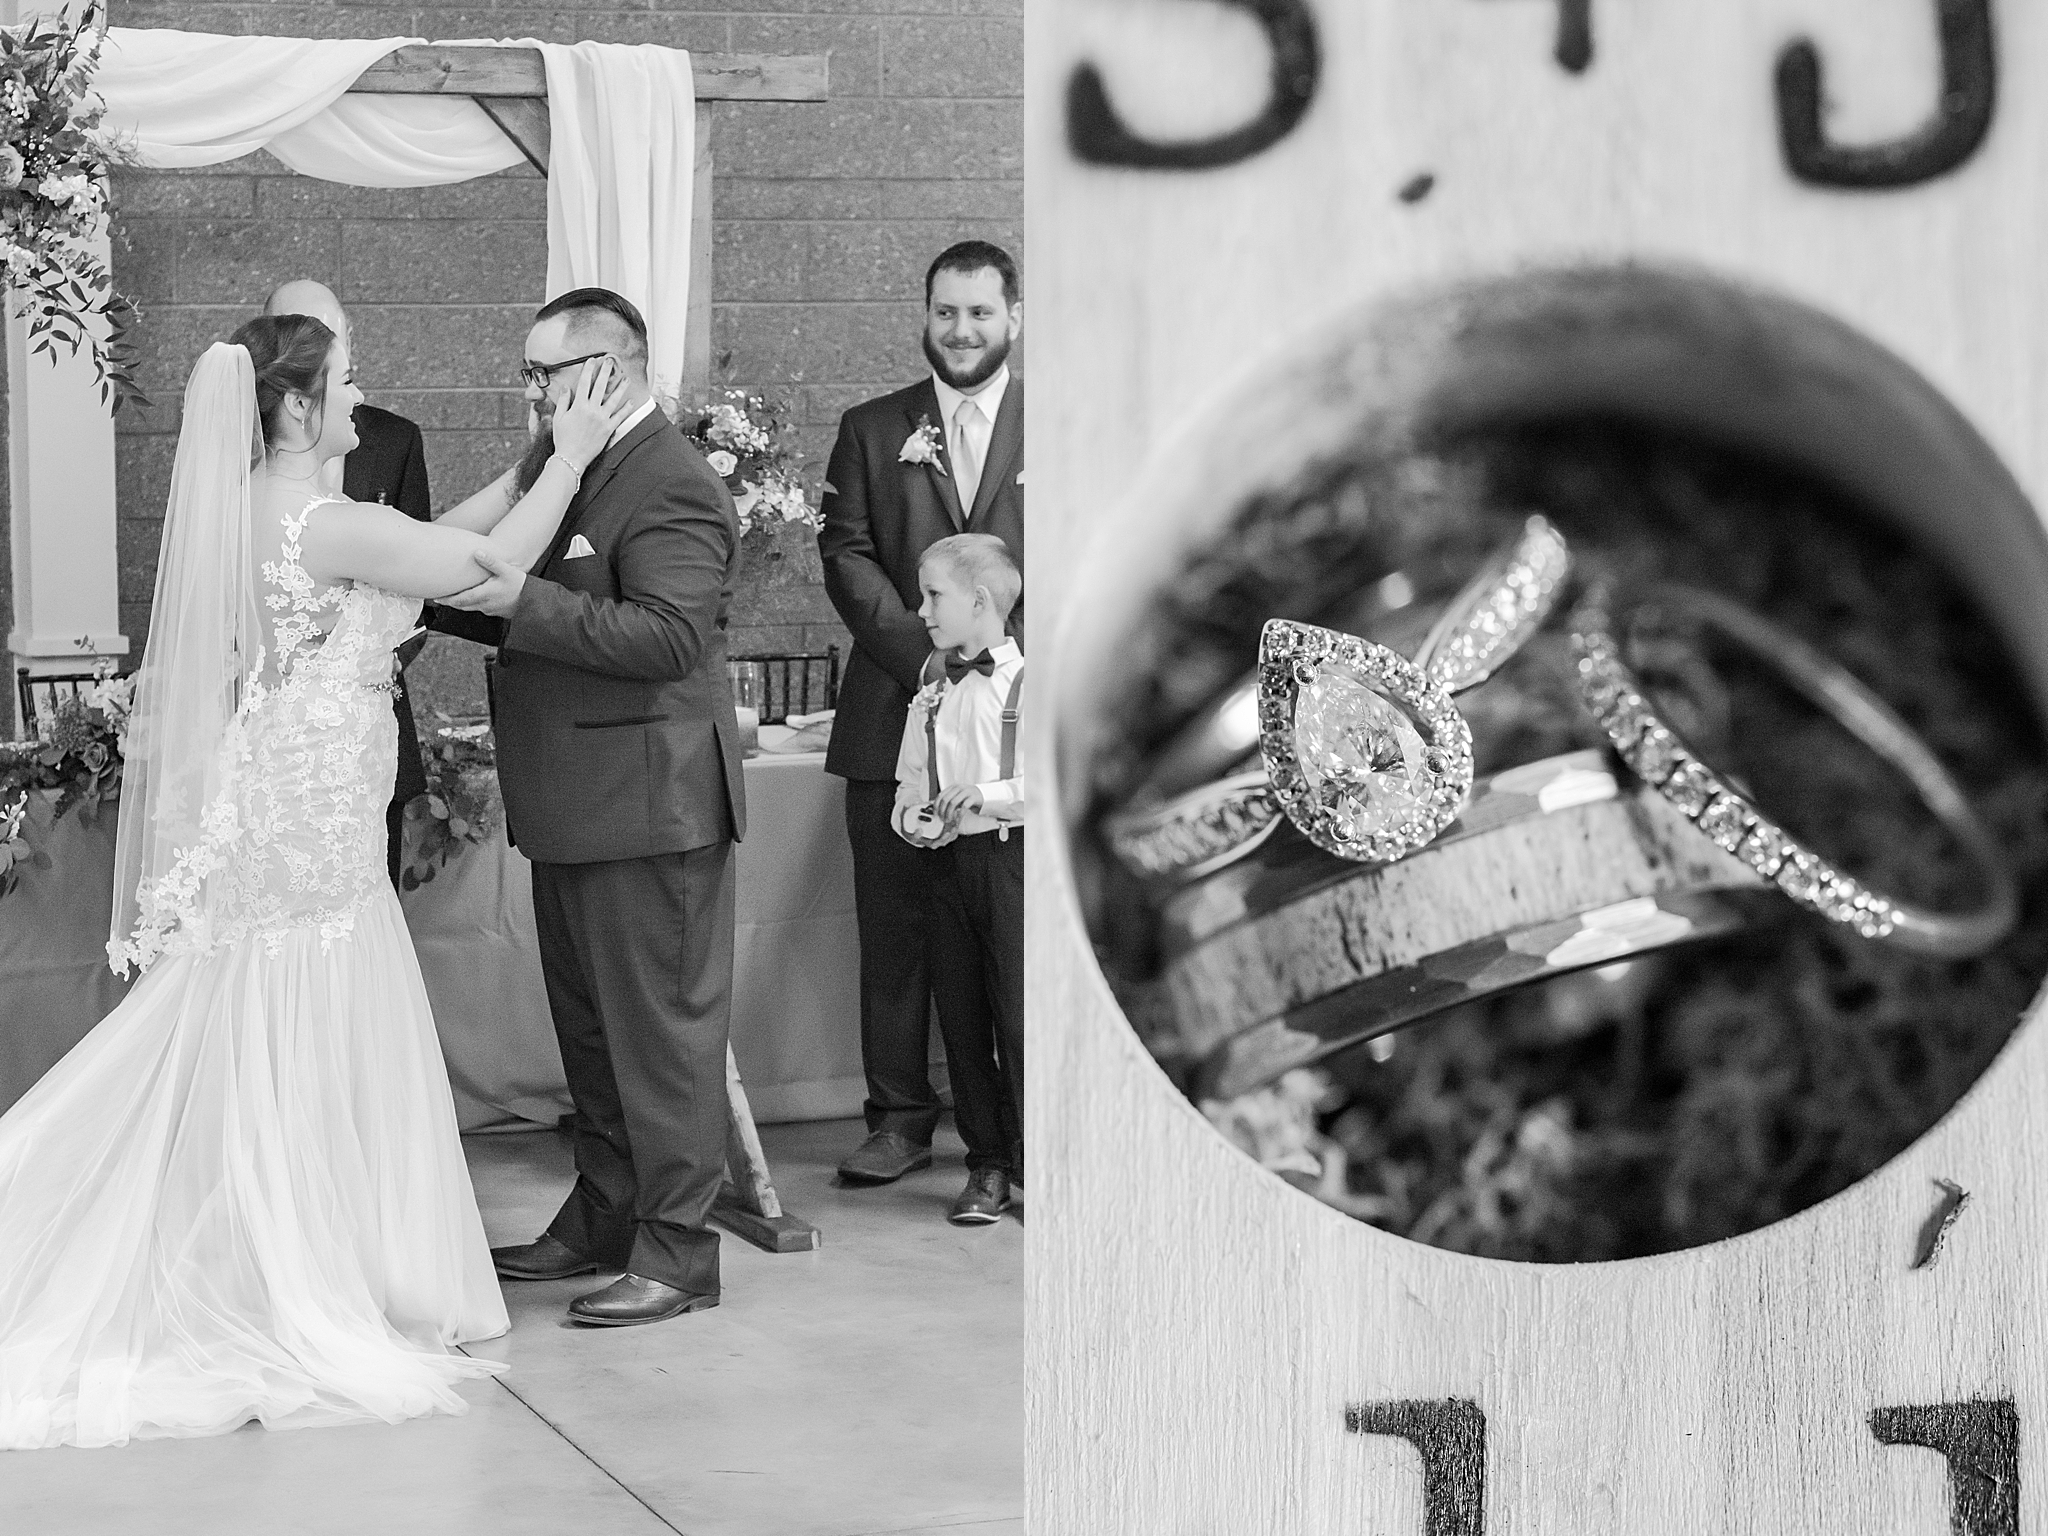 detroit-wedding-photographer-brownstown-event-center-wedding-photos-sam-josh-by-courtney-carolyn-photography_0034.jpg